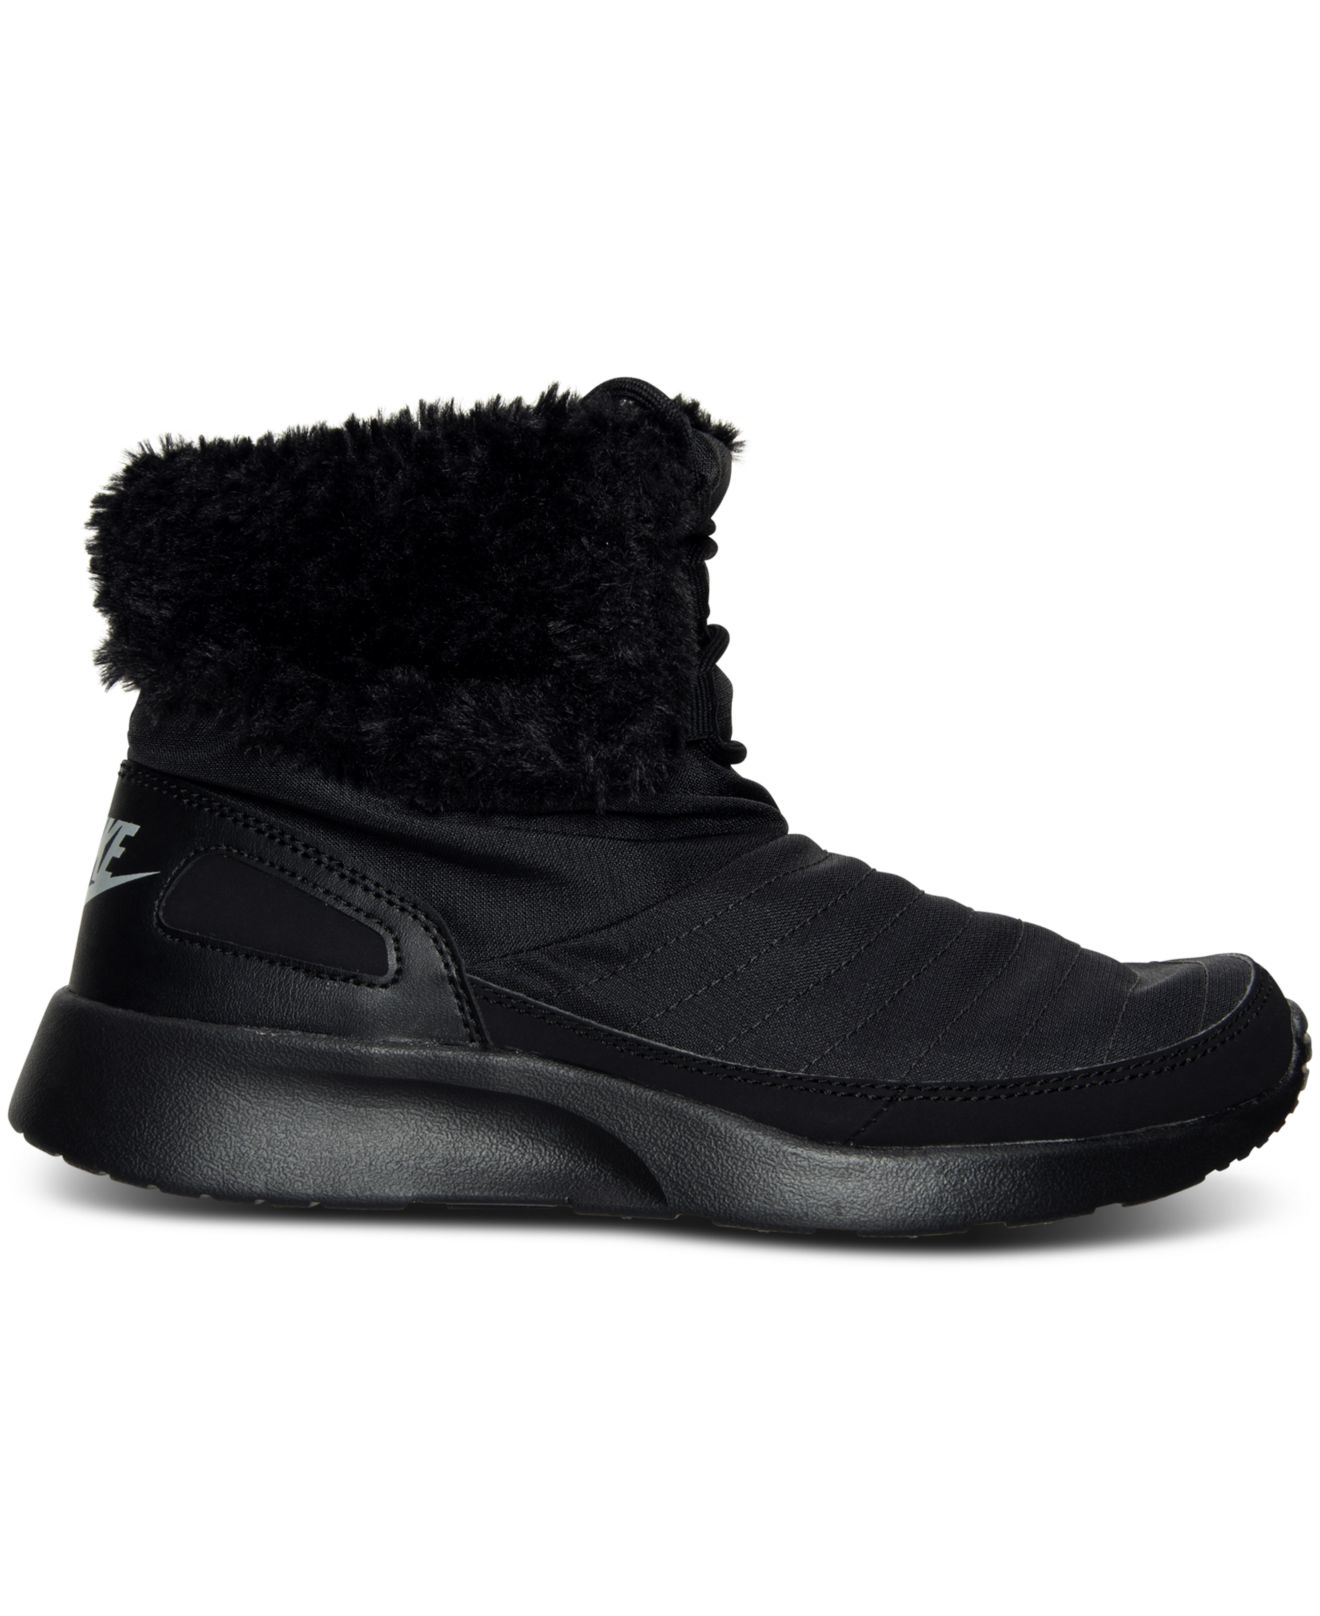 67134c3ad273b3 Lyst - Nike Women s Kaishi Winter High Sneakerboots From Finish Line ...